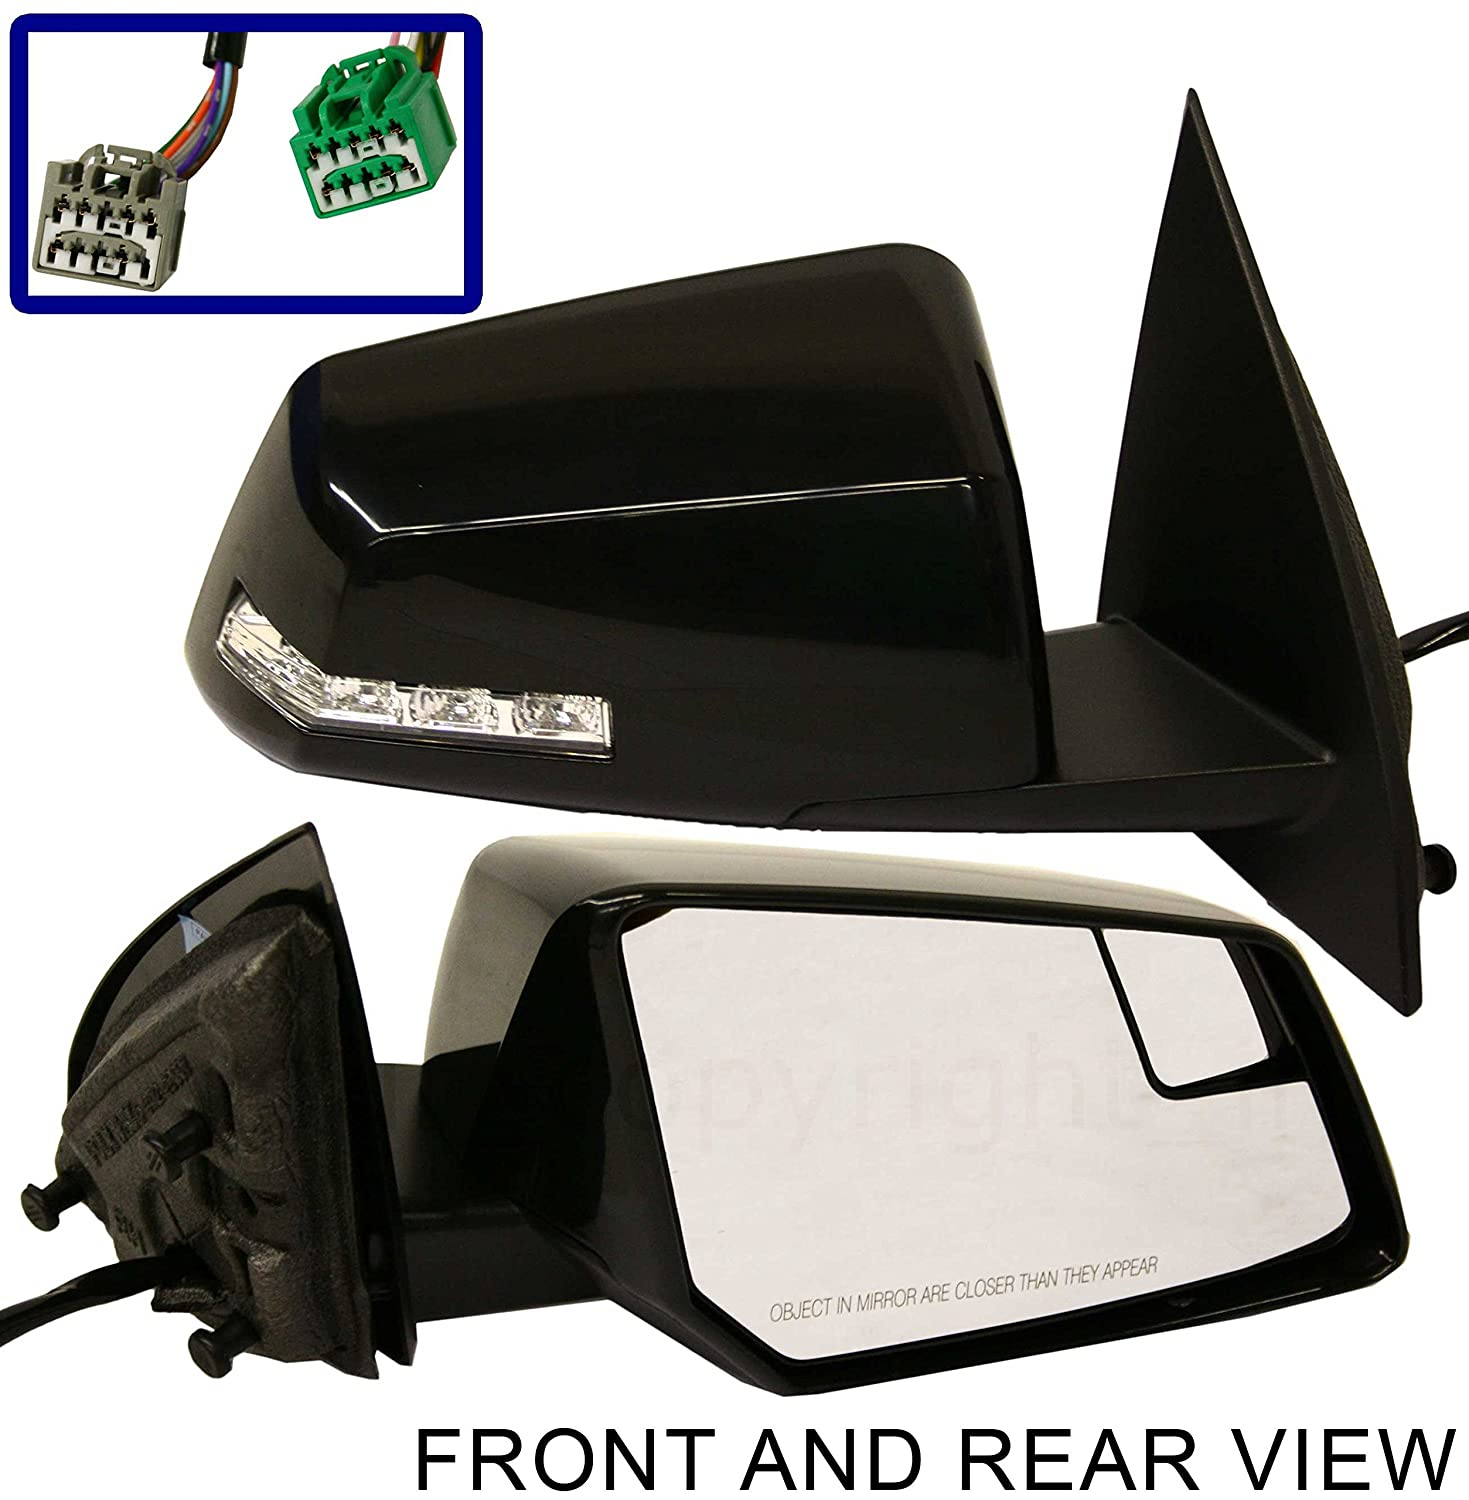 HEATED POWER CHEVROLET TRAVERSE 09-12 SIDE MIRROR RIGHT PASSENGER POWER FOLD US Auto Parts